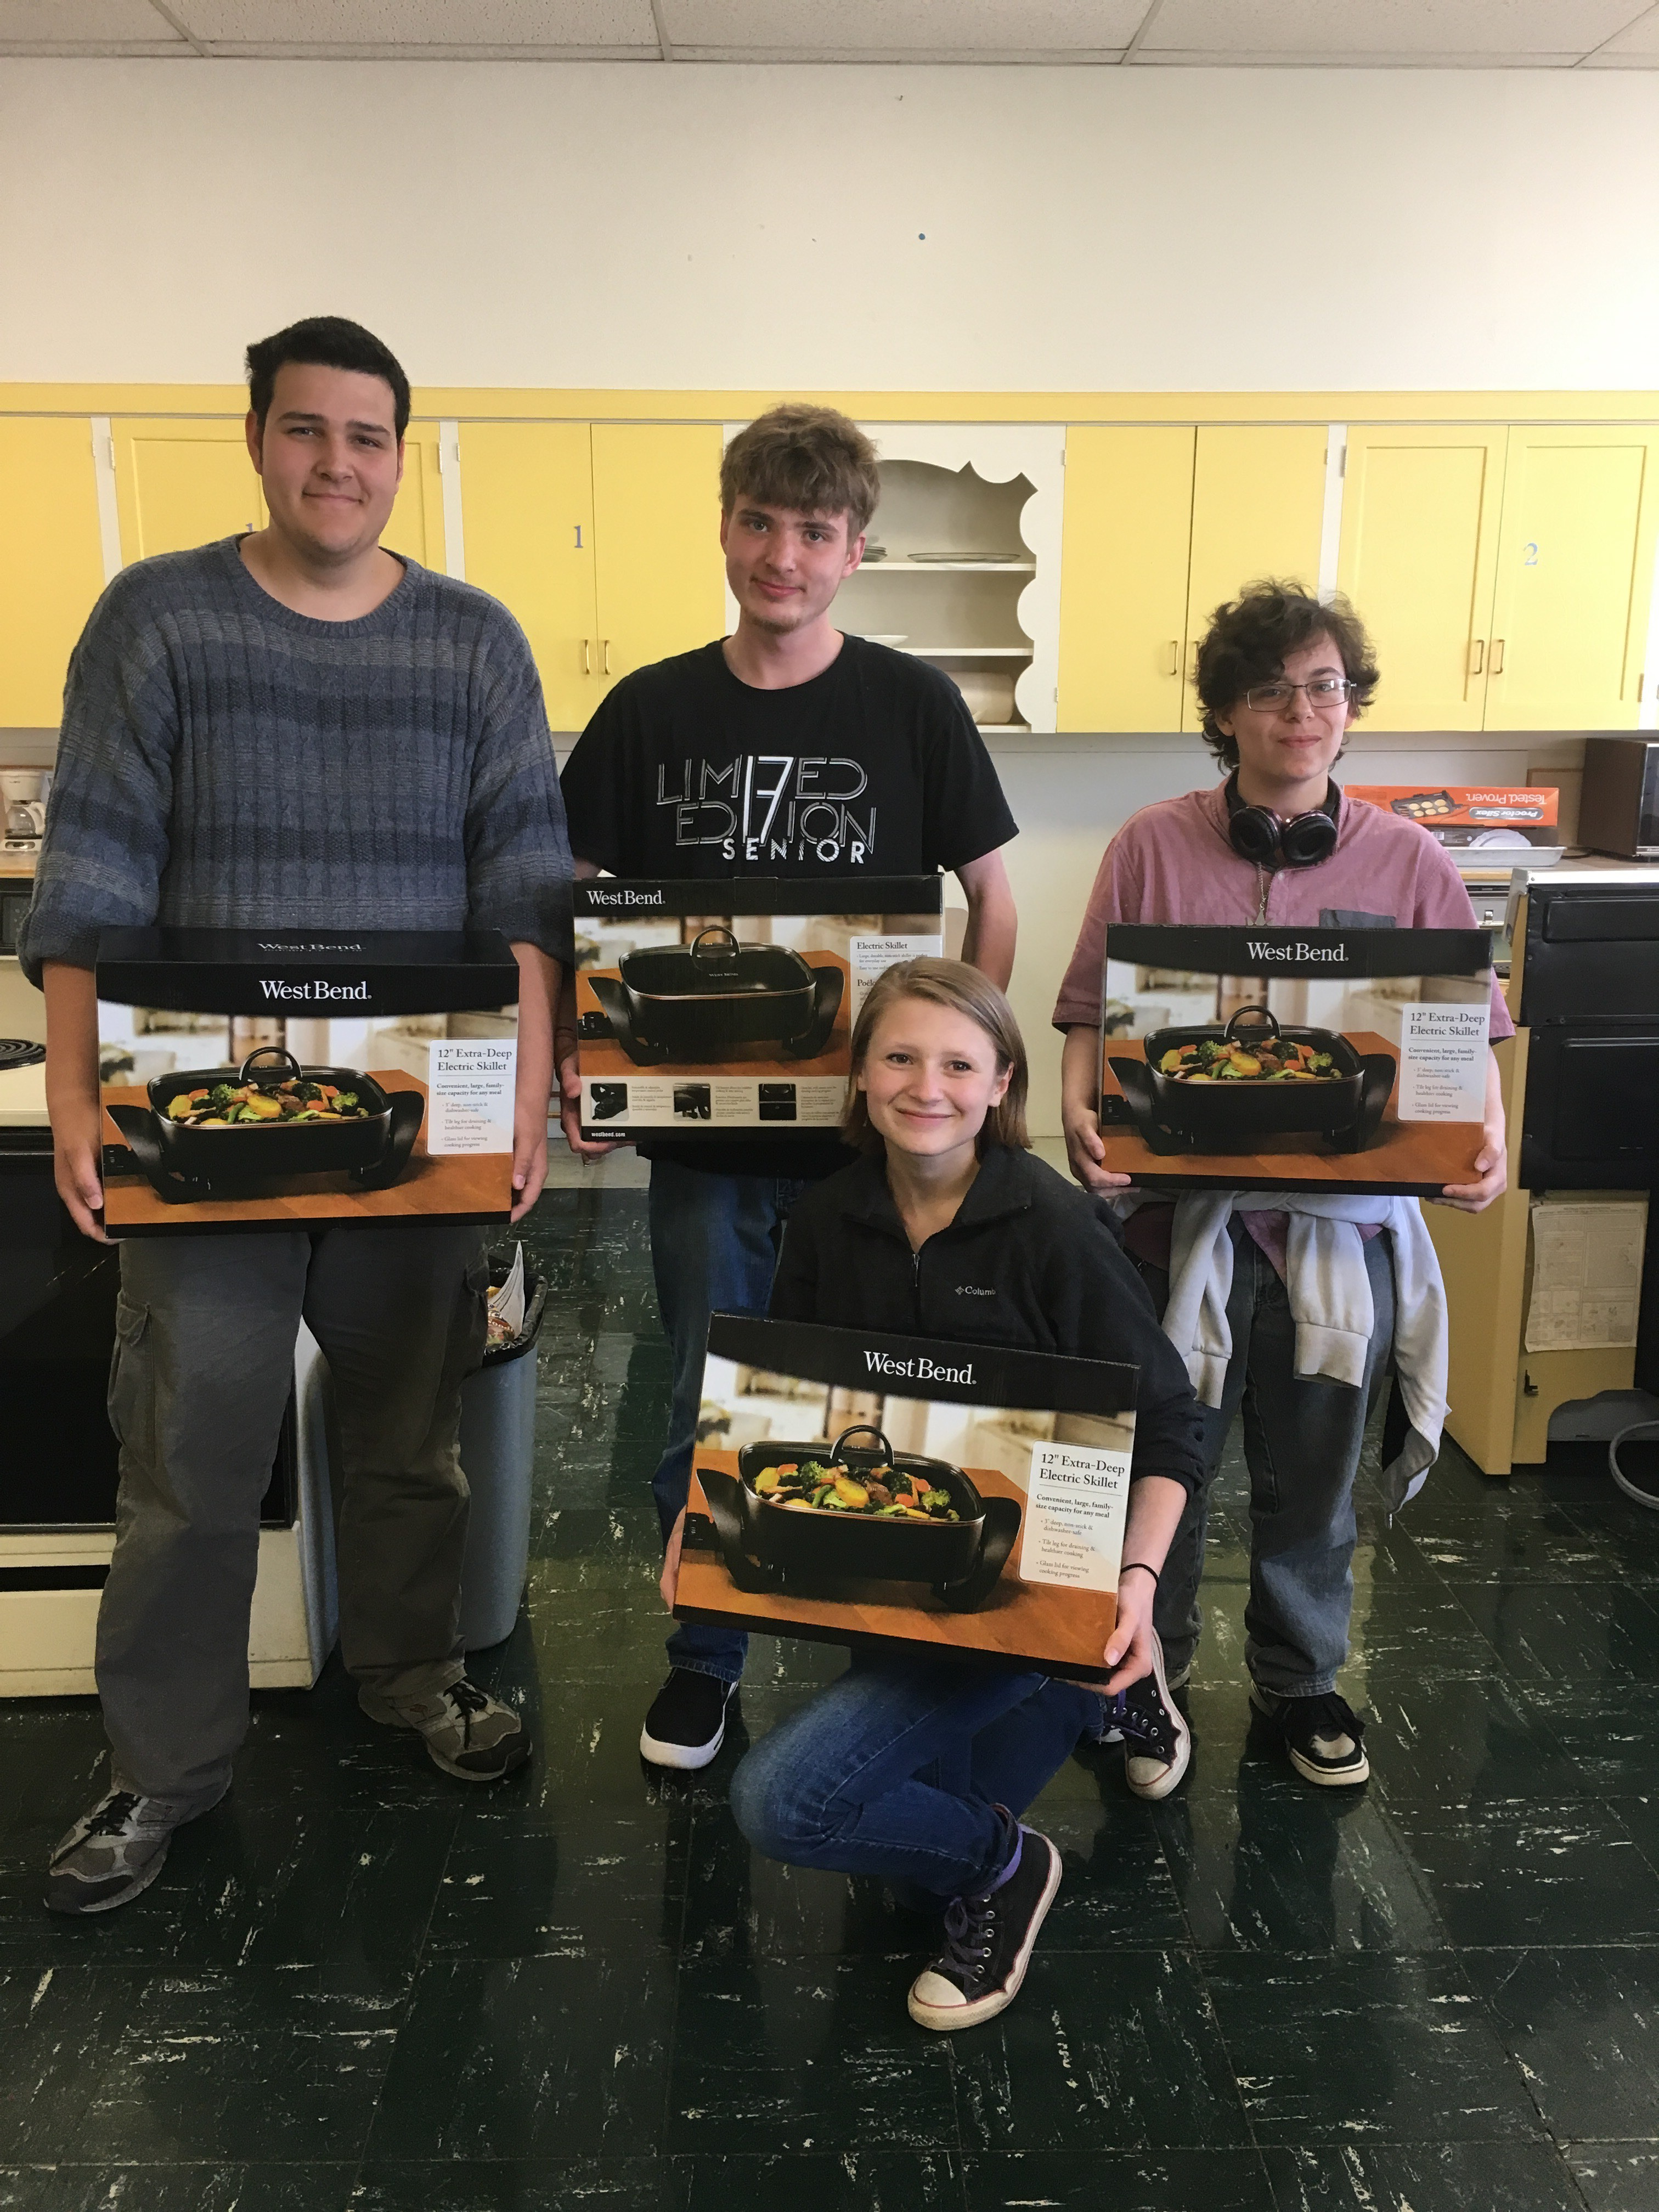 participants pose smiling with their new electric skillets